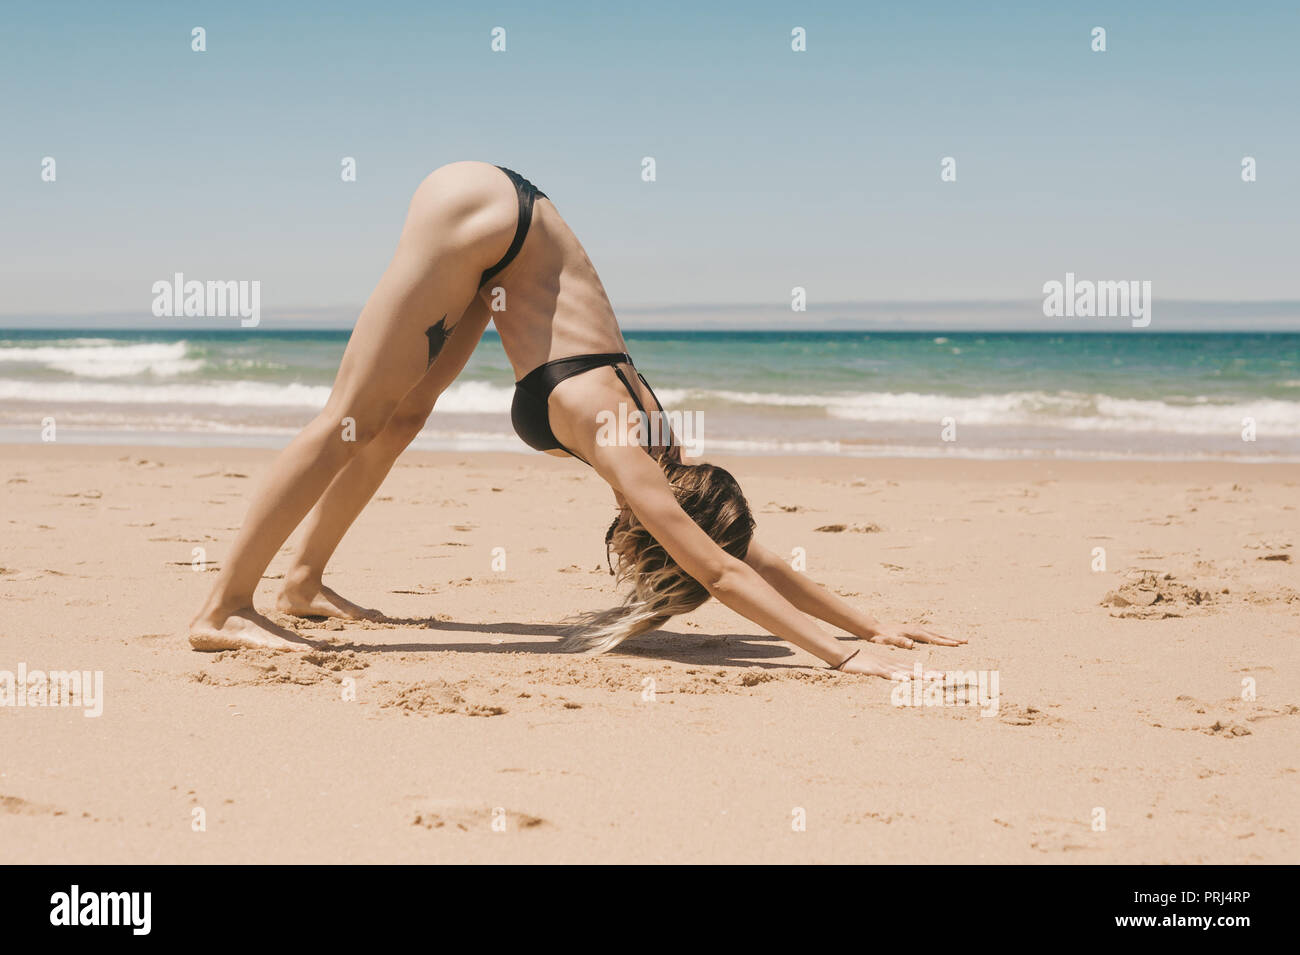 side view of young woman practicing downward facing dog yoga pose on sandy beach - Stock Image